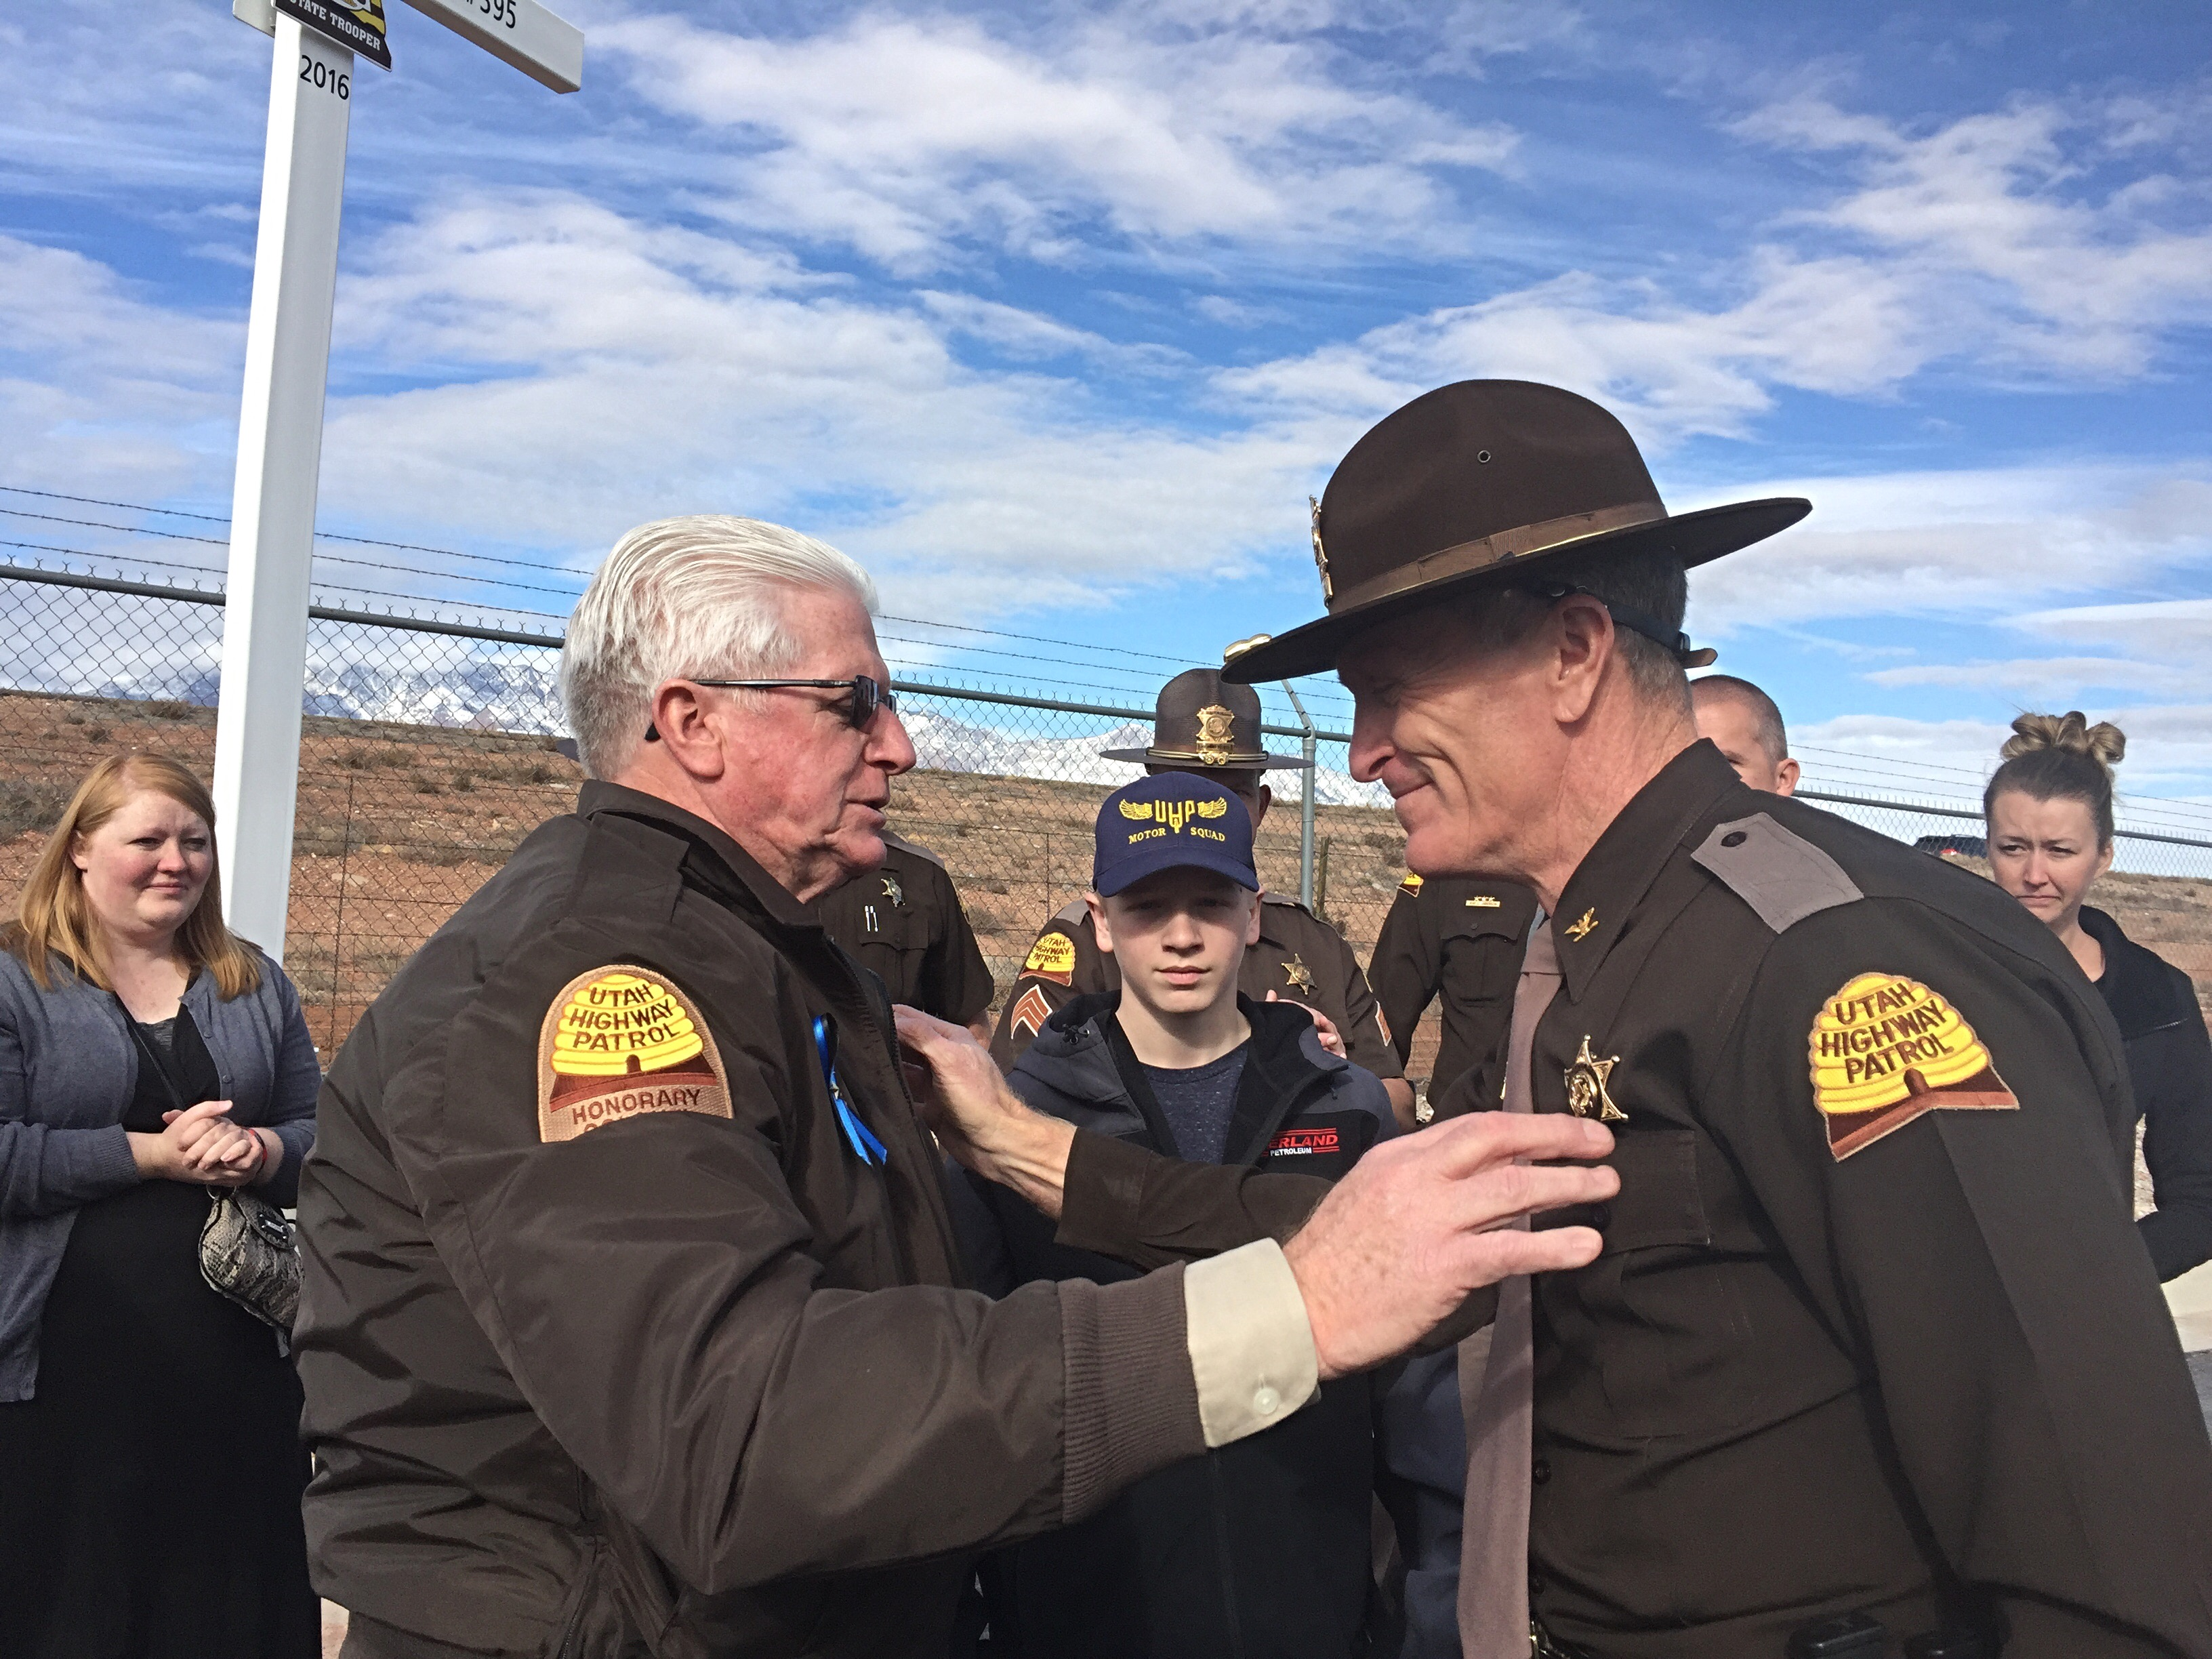 Utah Highway Patrol Col. Michael Rapich thanks Utah Sen. Don Ipson for his support of the Highway Patrol at the site of a memorial for fallen troopers killed in the line of duty, Hurricane, Utah, Dec. 30, 2016 | Photo by Kimberly Scott, St. George News